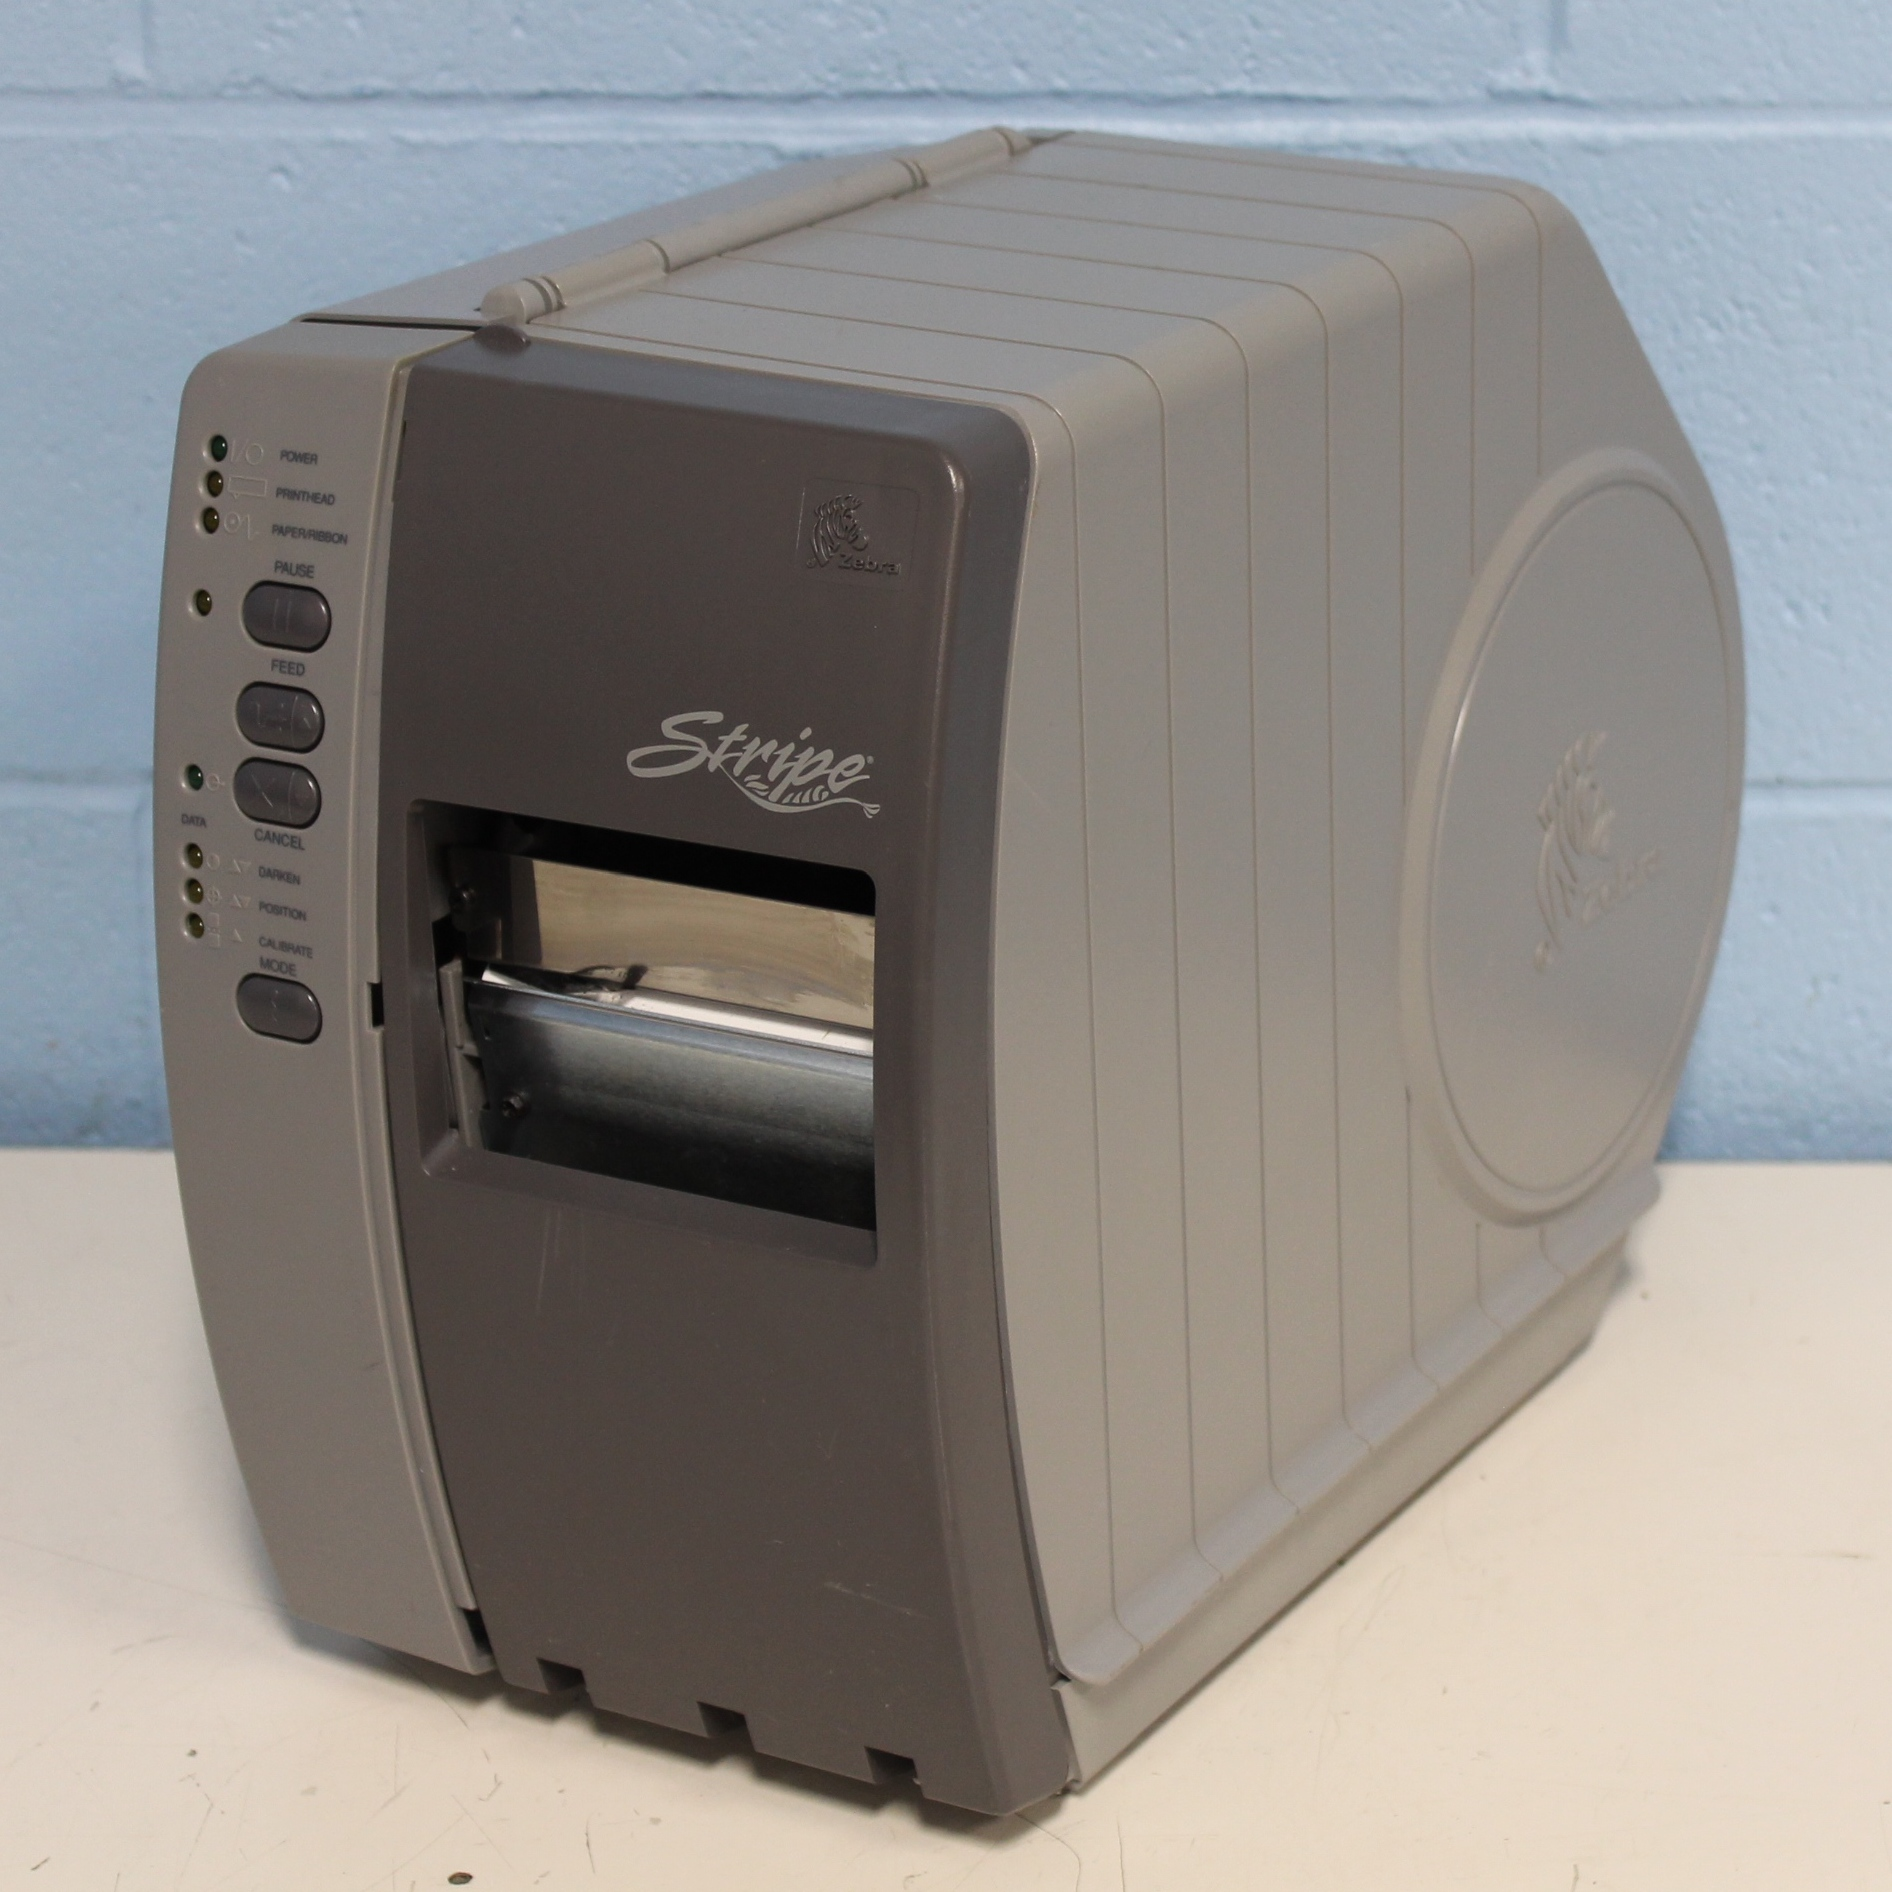 Zebra Technologies Inc S600 Label Thermal Printer Image